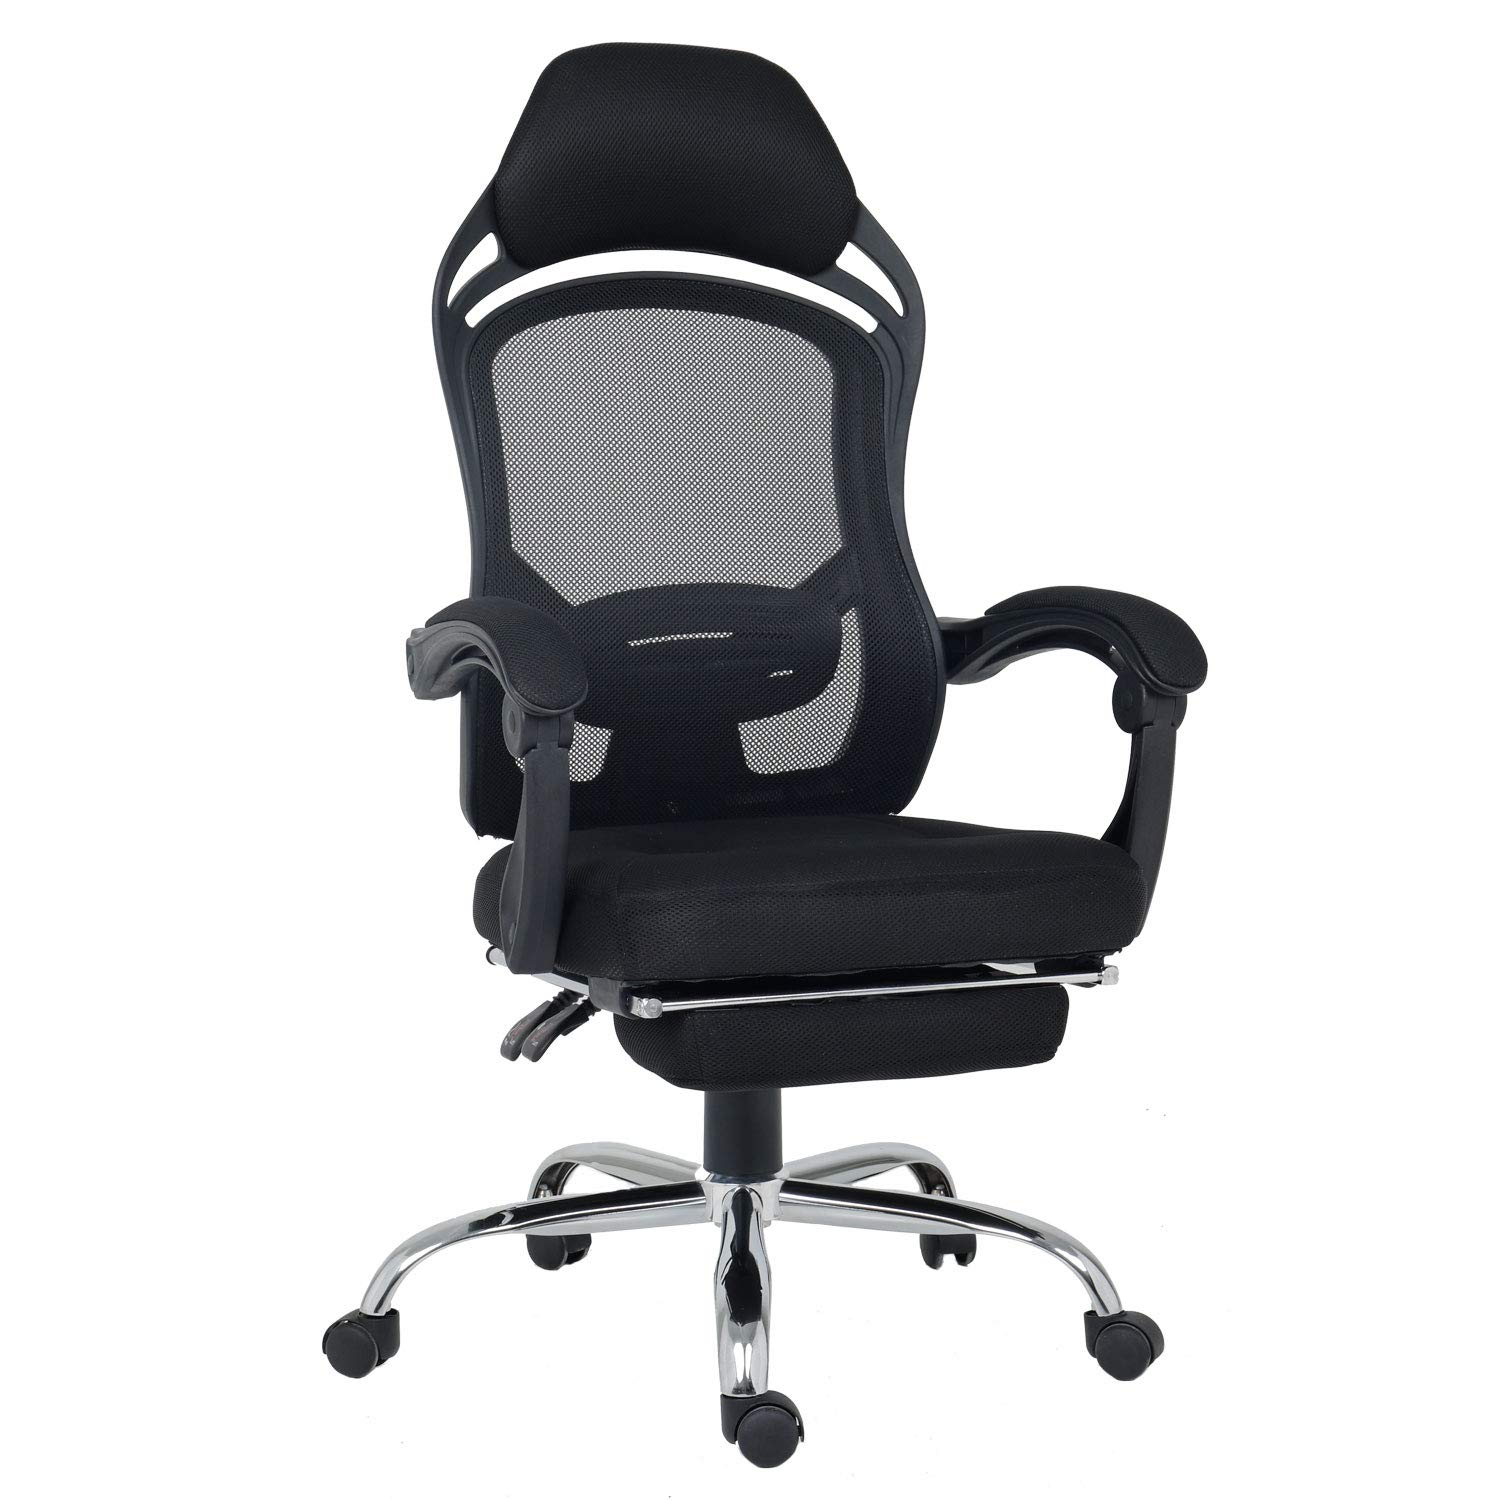 High Footstool Leisure Office Chair Fixing Prices According To Quality Of Products Desk Chair Iron Chair.